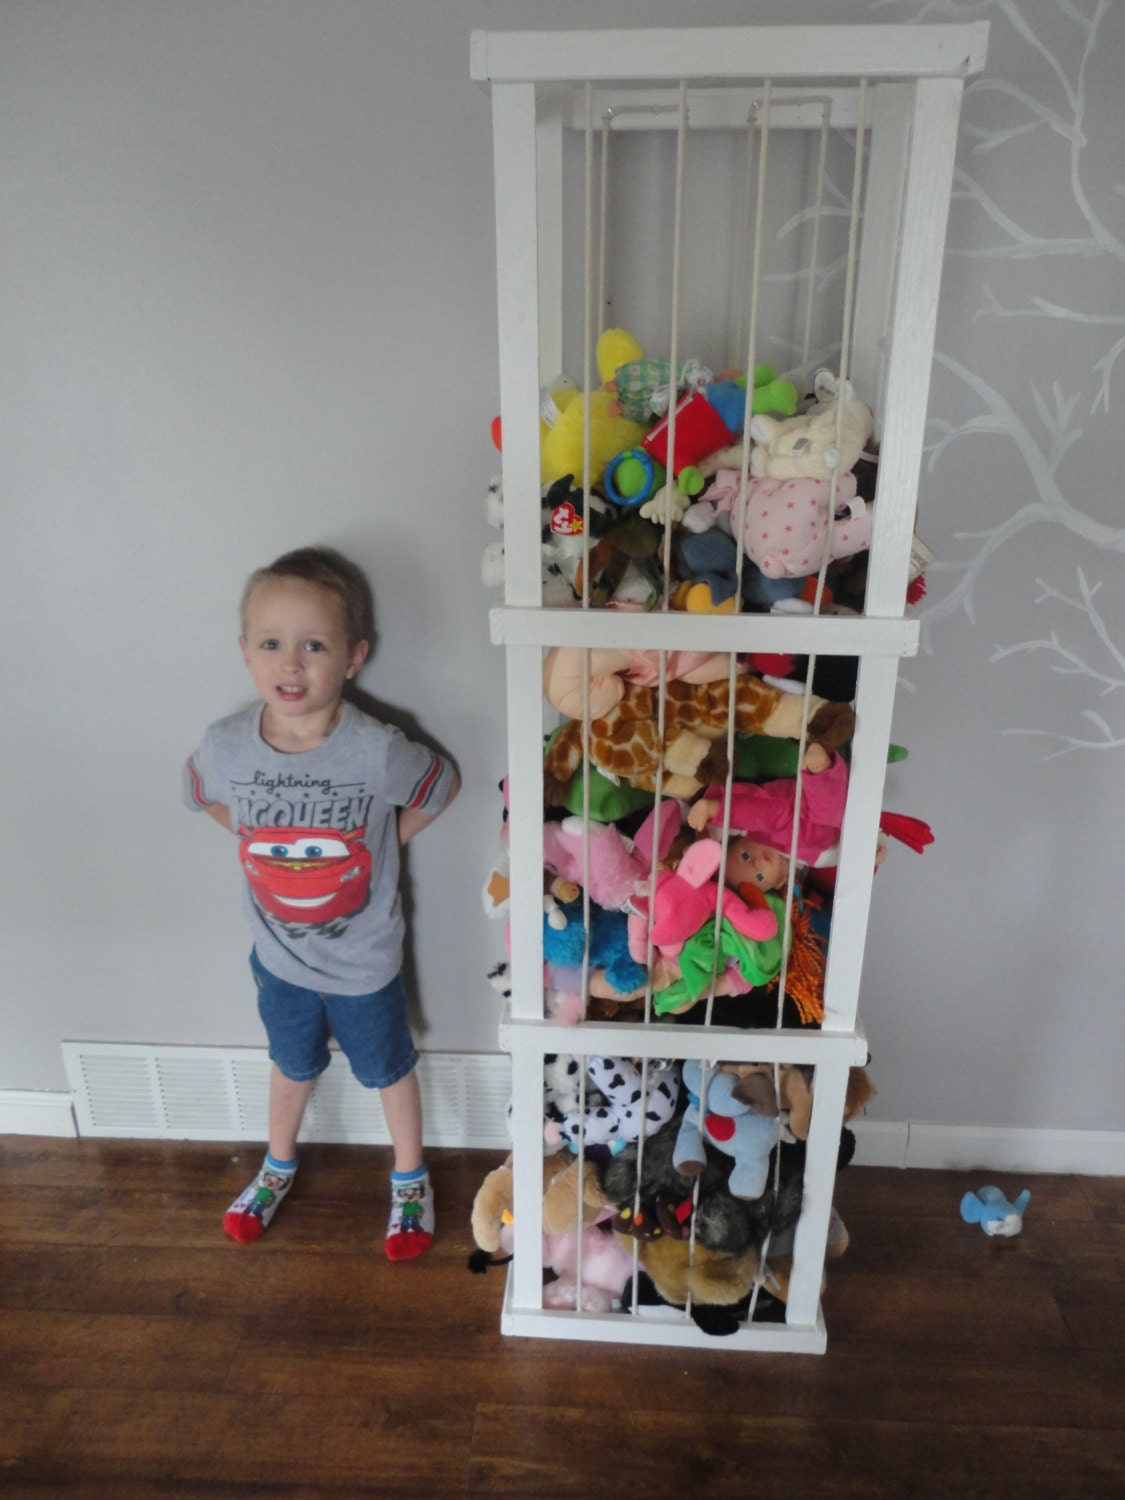 5 Ft Model Stuffed Animal Storage Reserved